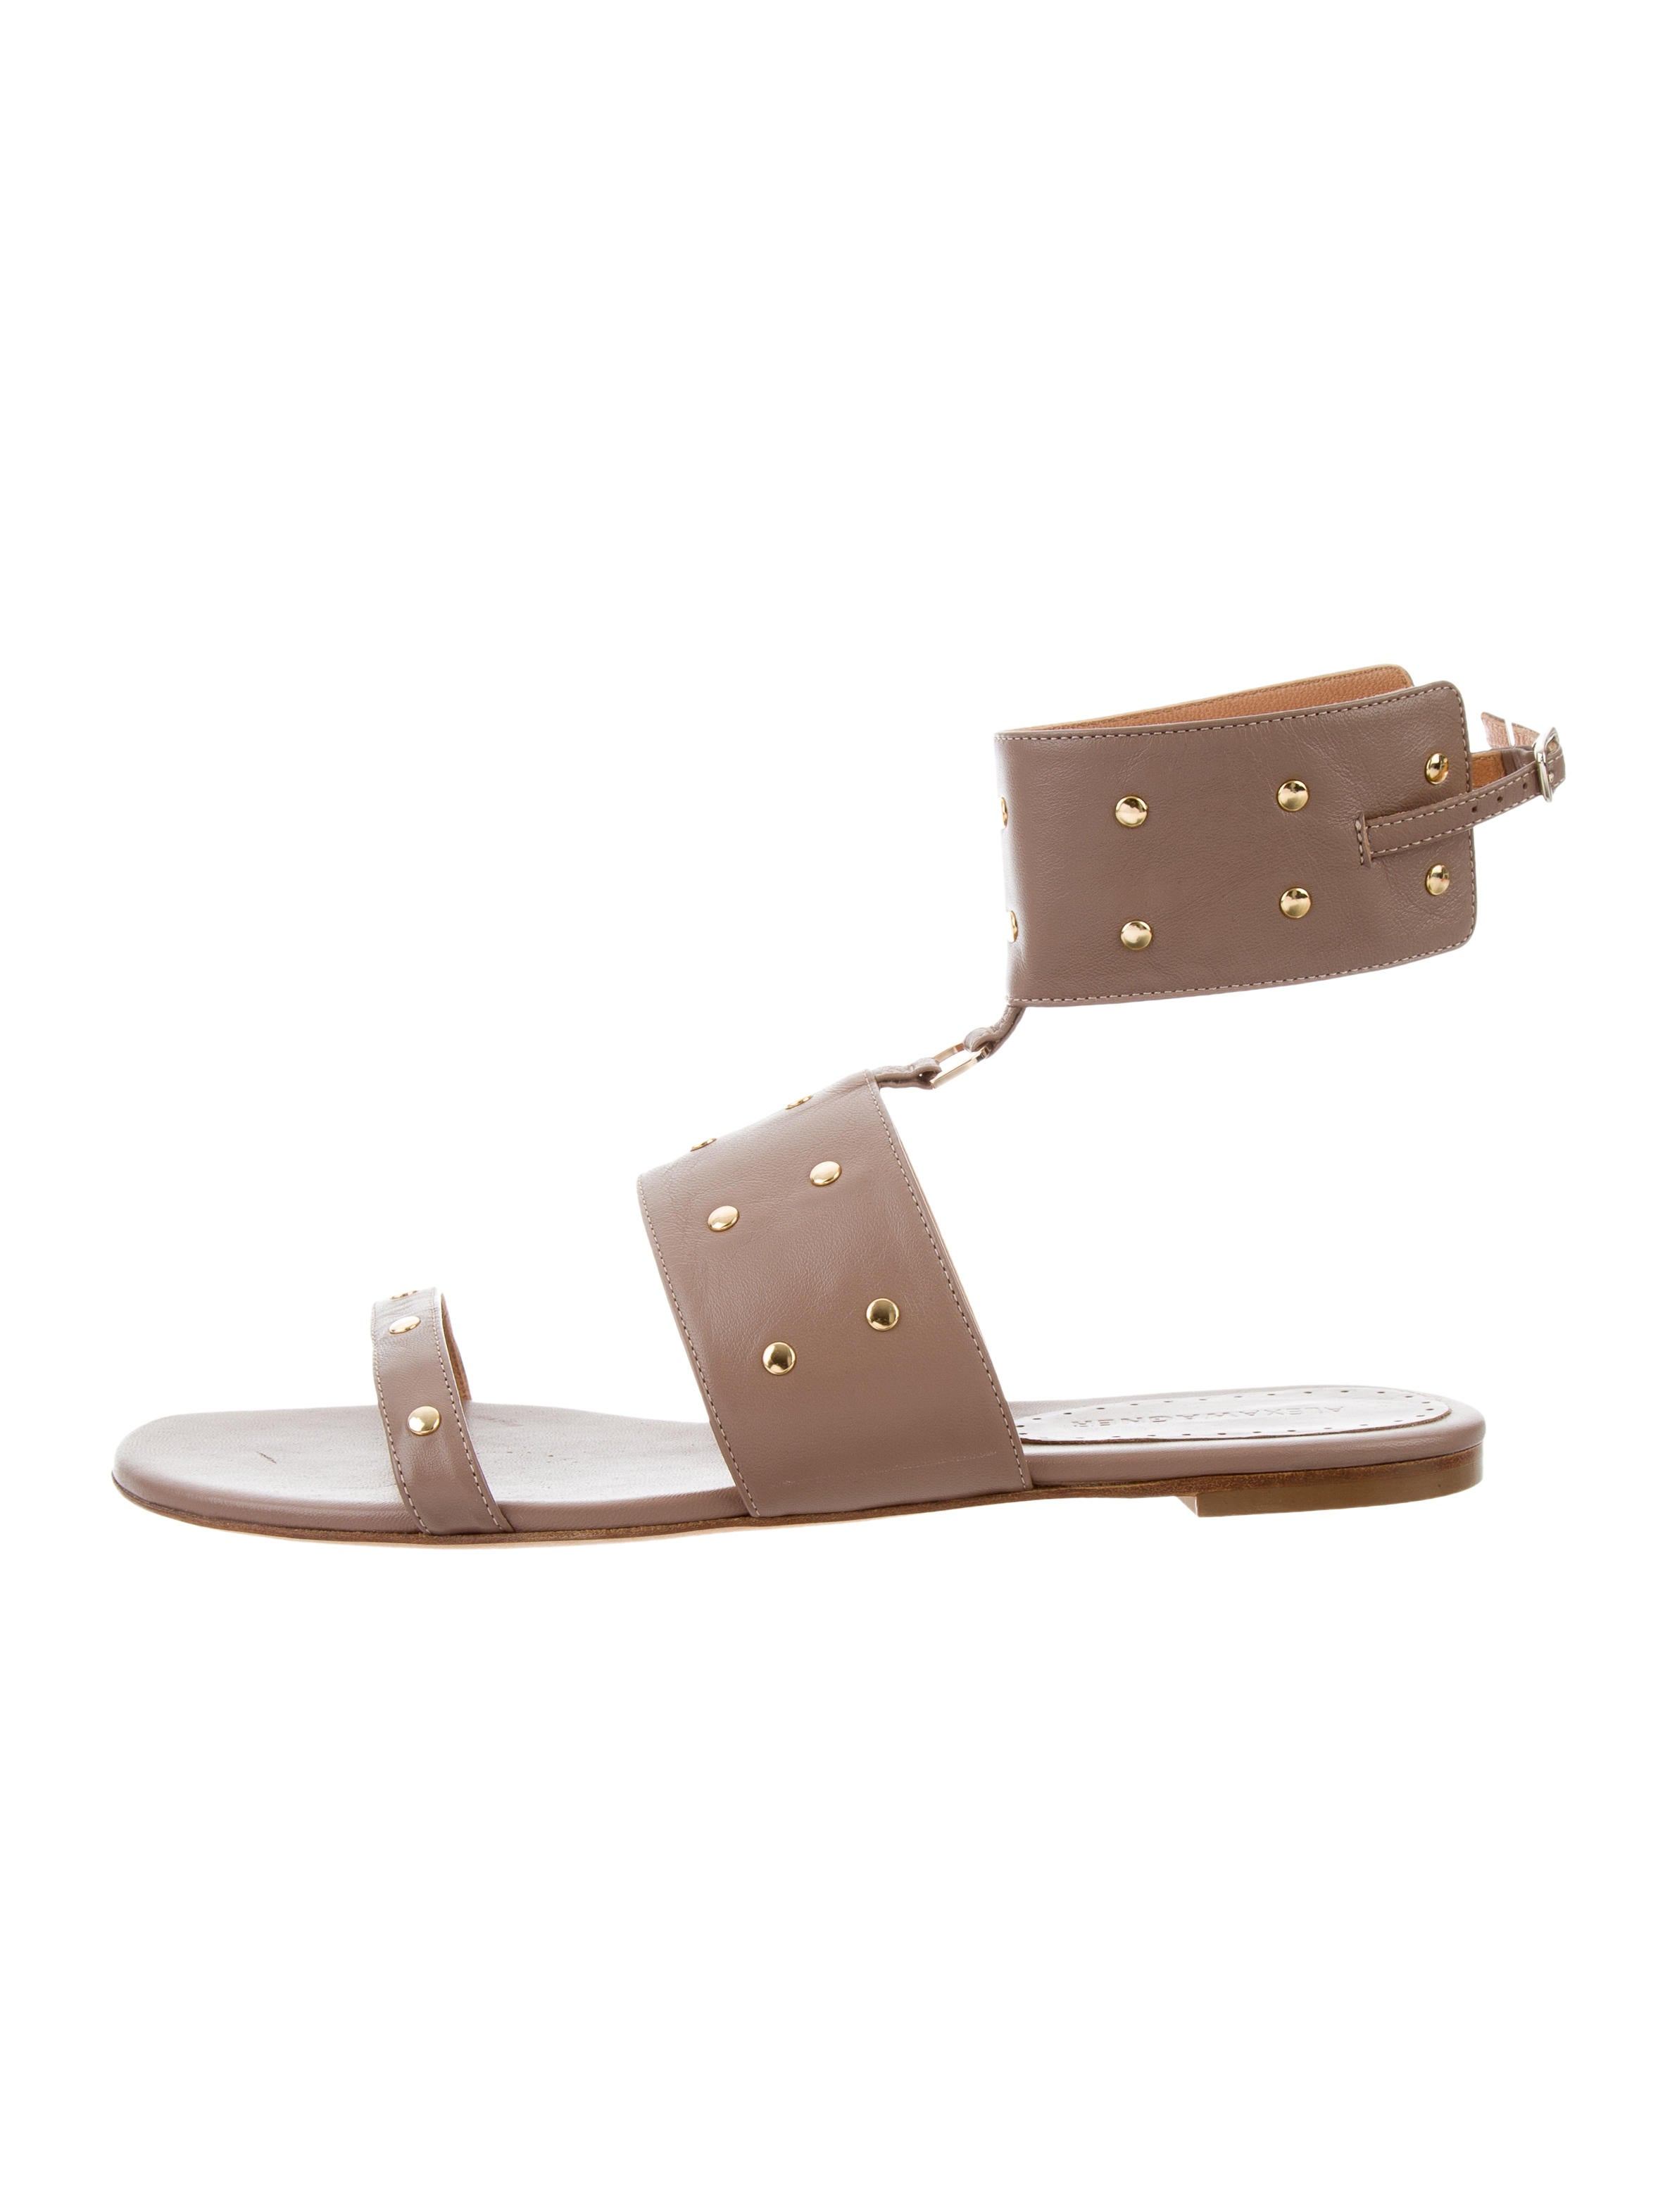 low shipping cheap online footlocker finishline online Alexa Wagner Fatima Studded Sandals w/ Tags store online with paypal online outlet comfortable SIO6K